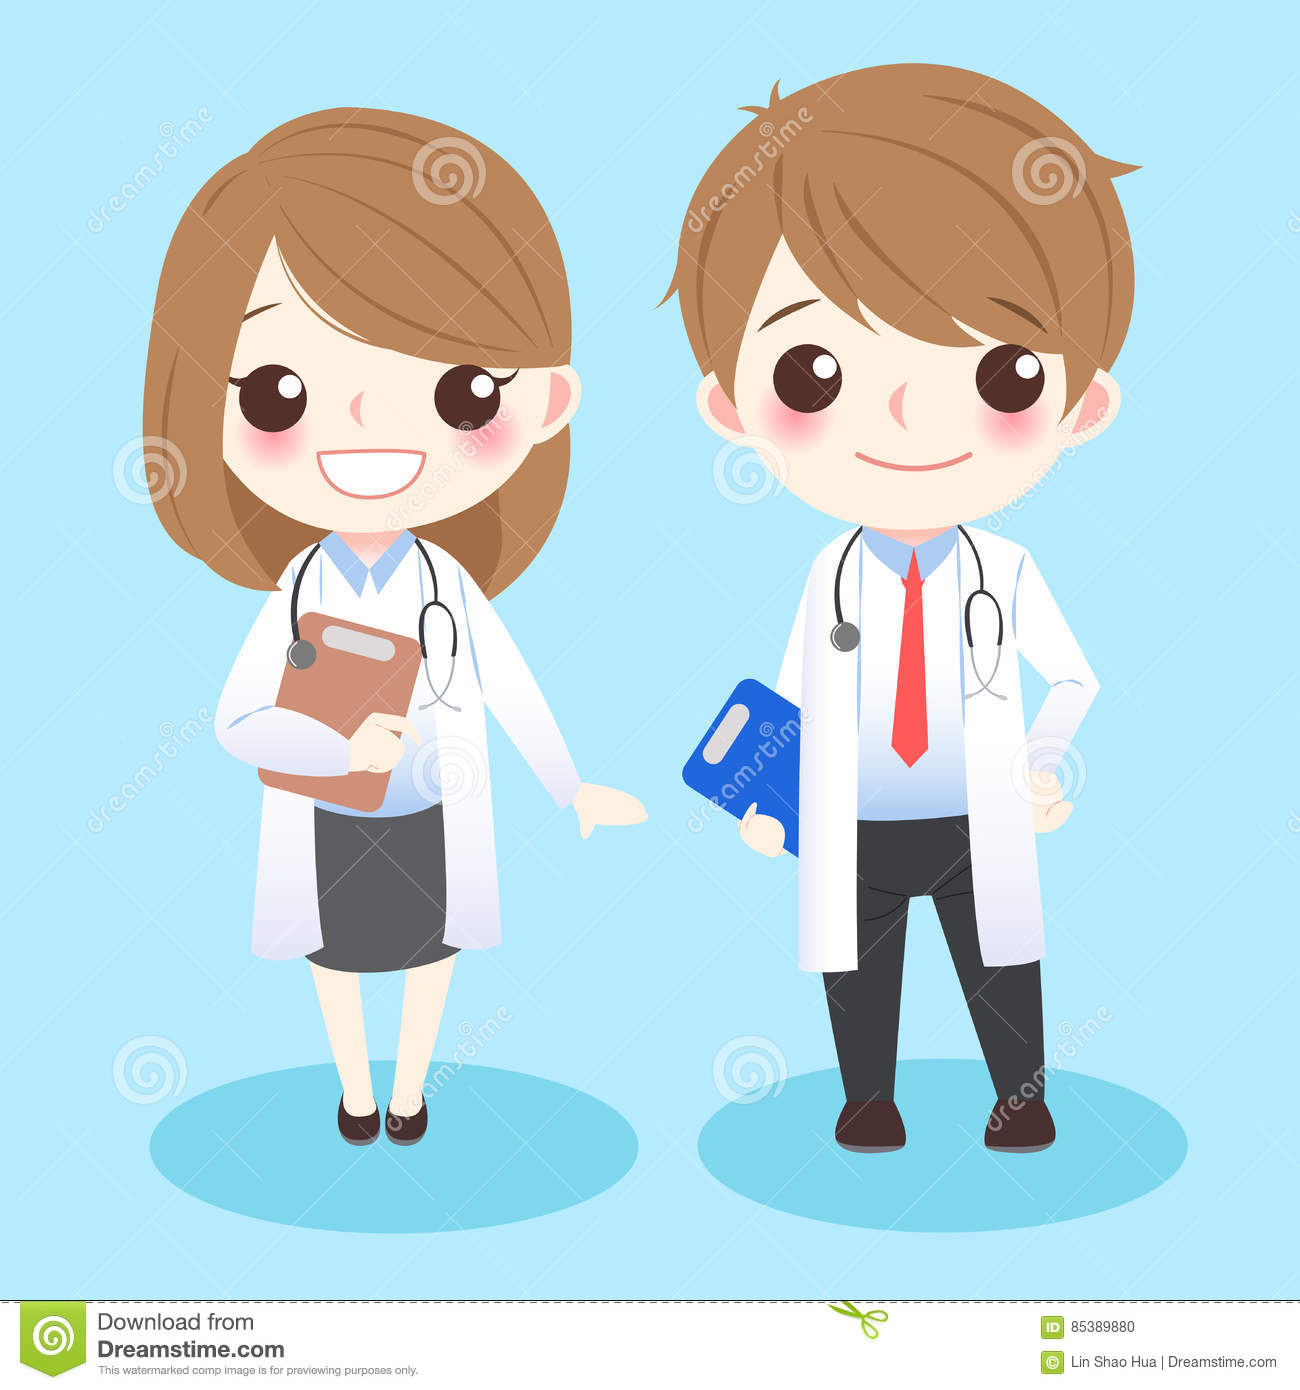 Cartoon doctors with organ royalty free stock photography